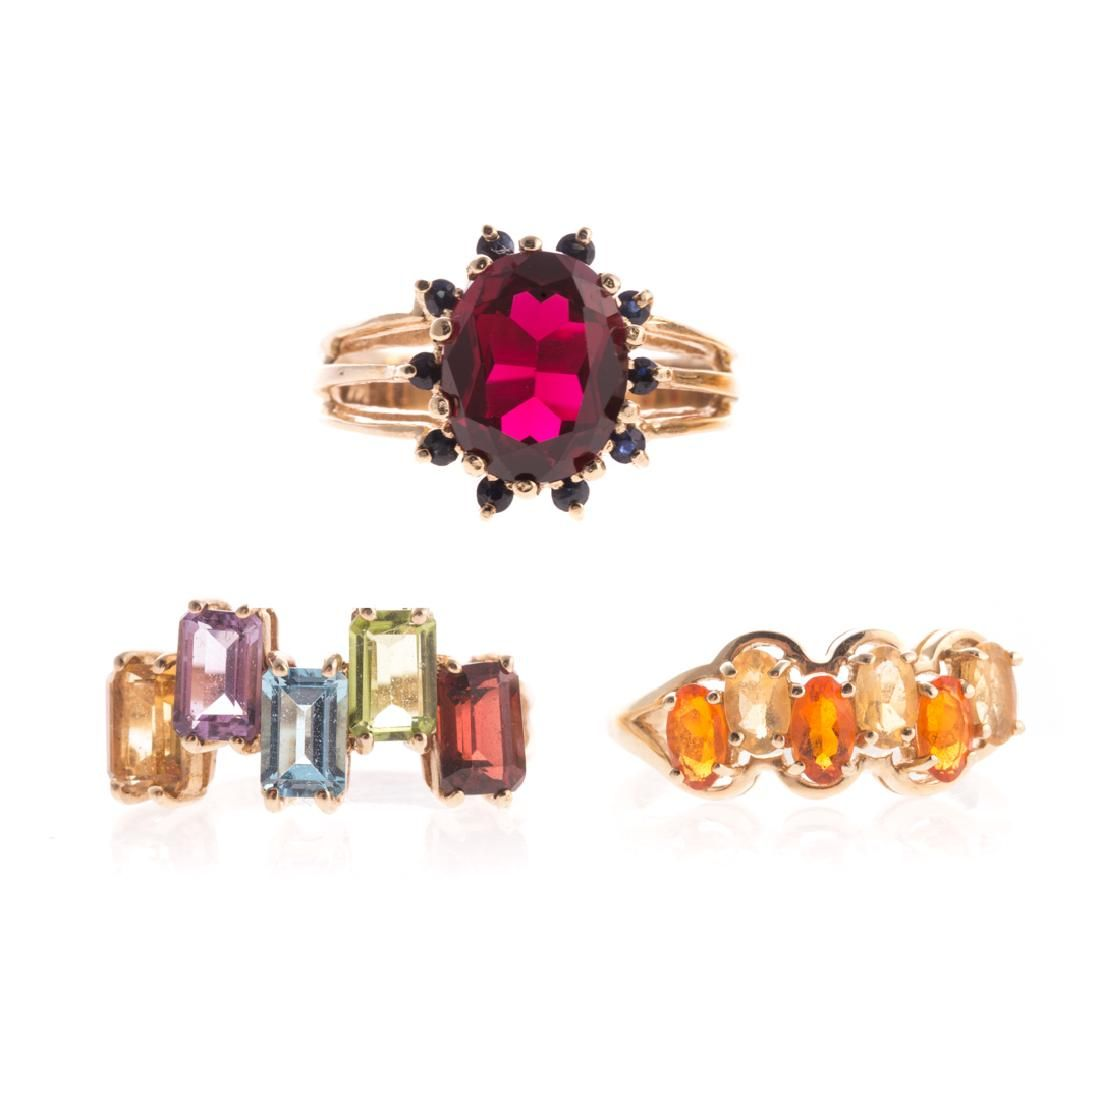 A Trio of Lady's Gemstone Rings in Gold